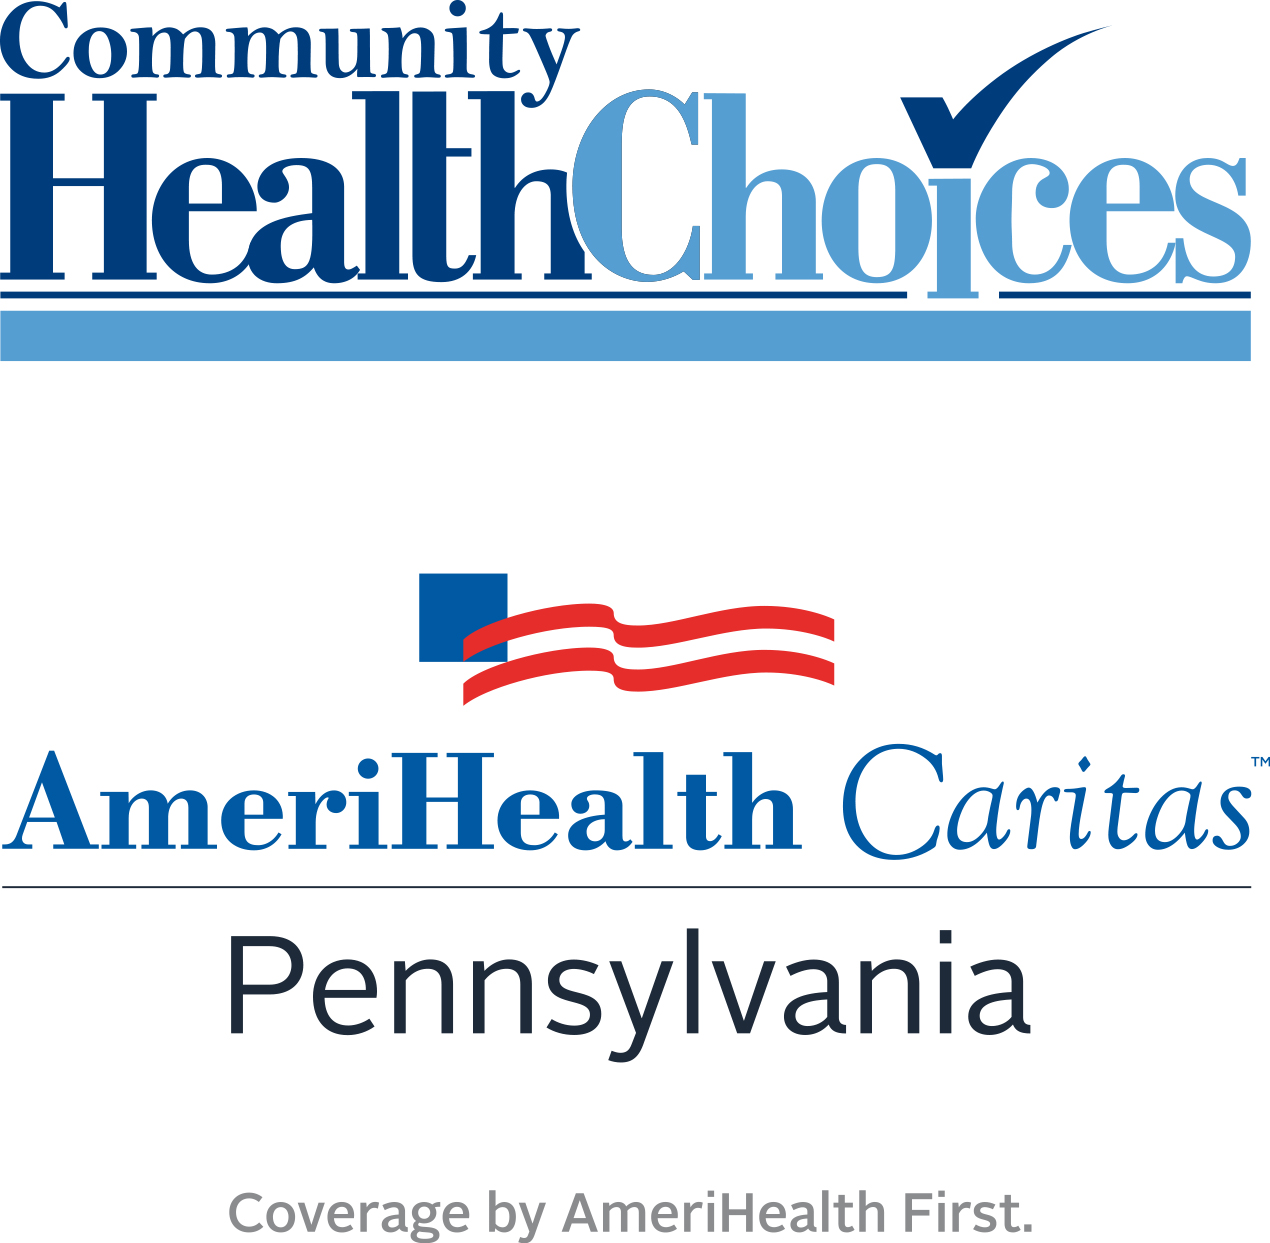 CHC_AmeriHealth Caritas Pennsylvania_stacked_tag